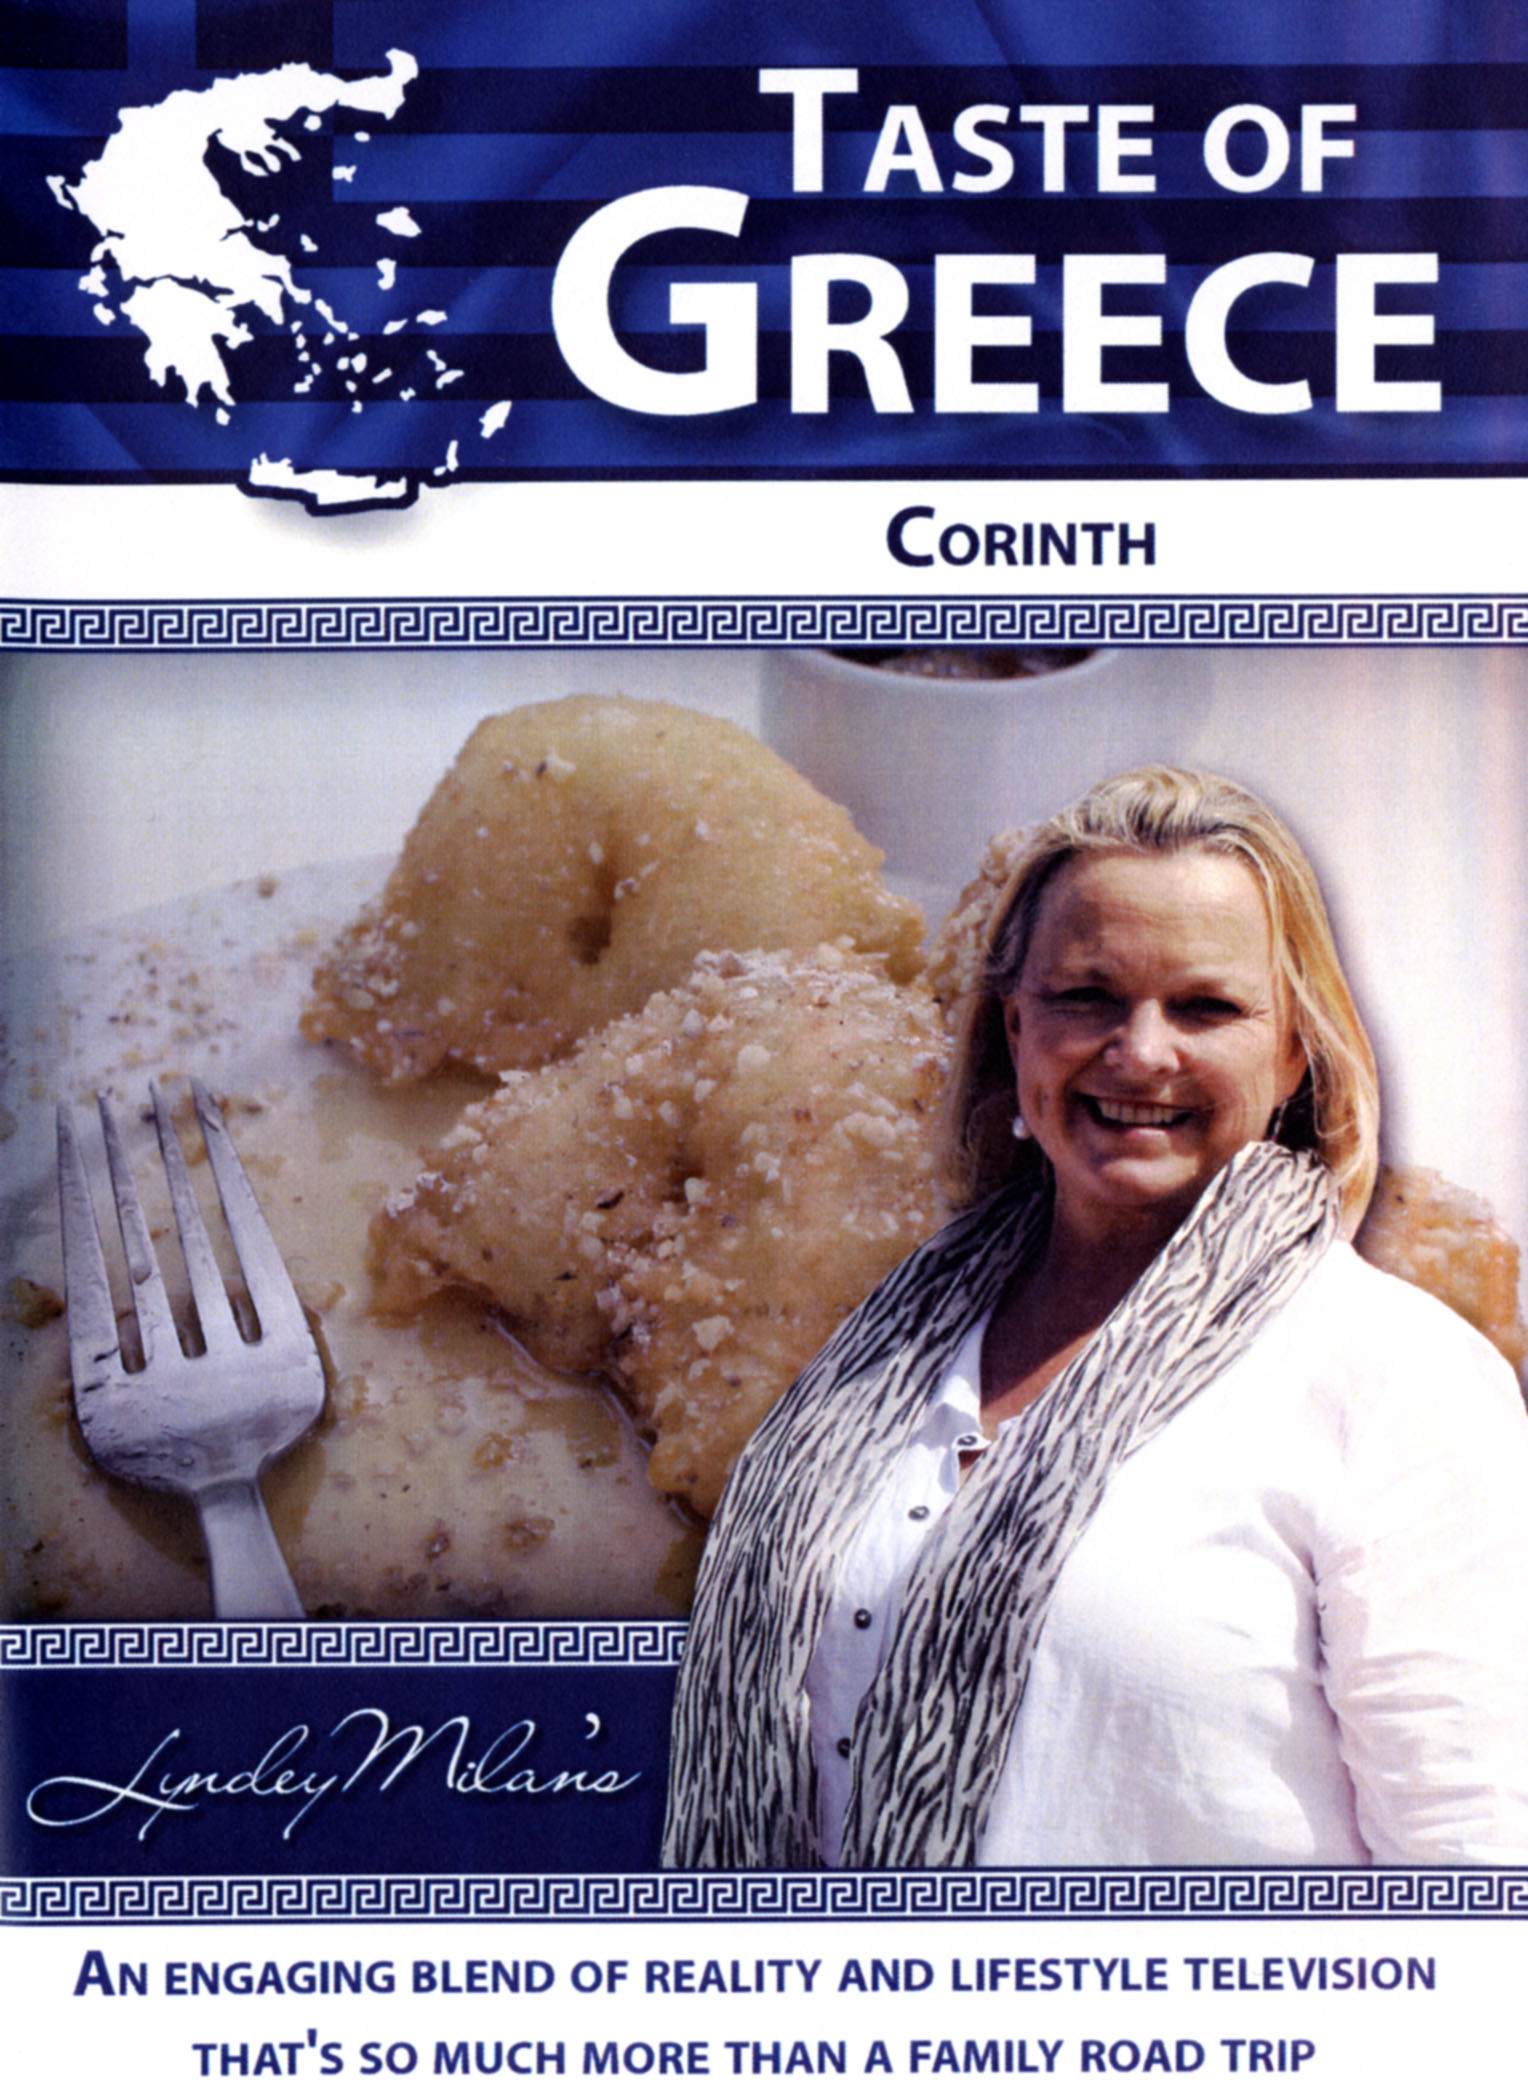 Taste of Greece: Corinth